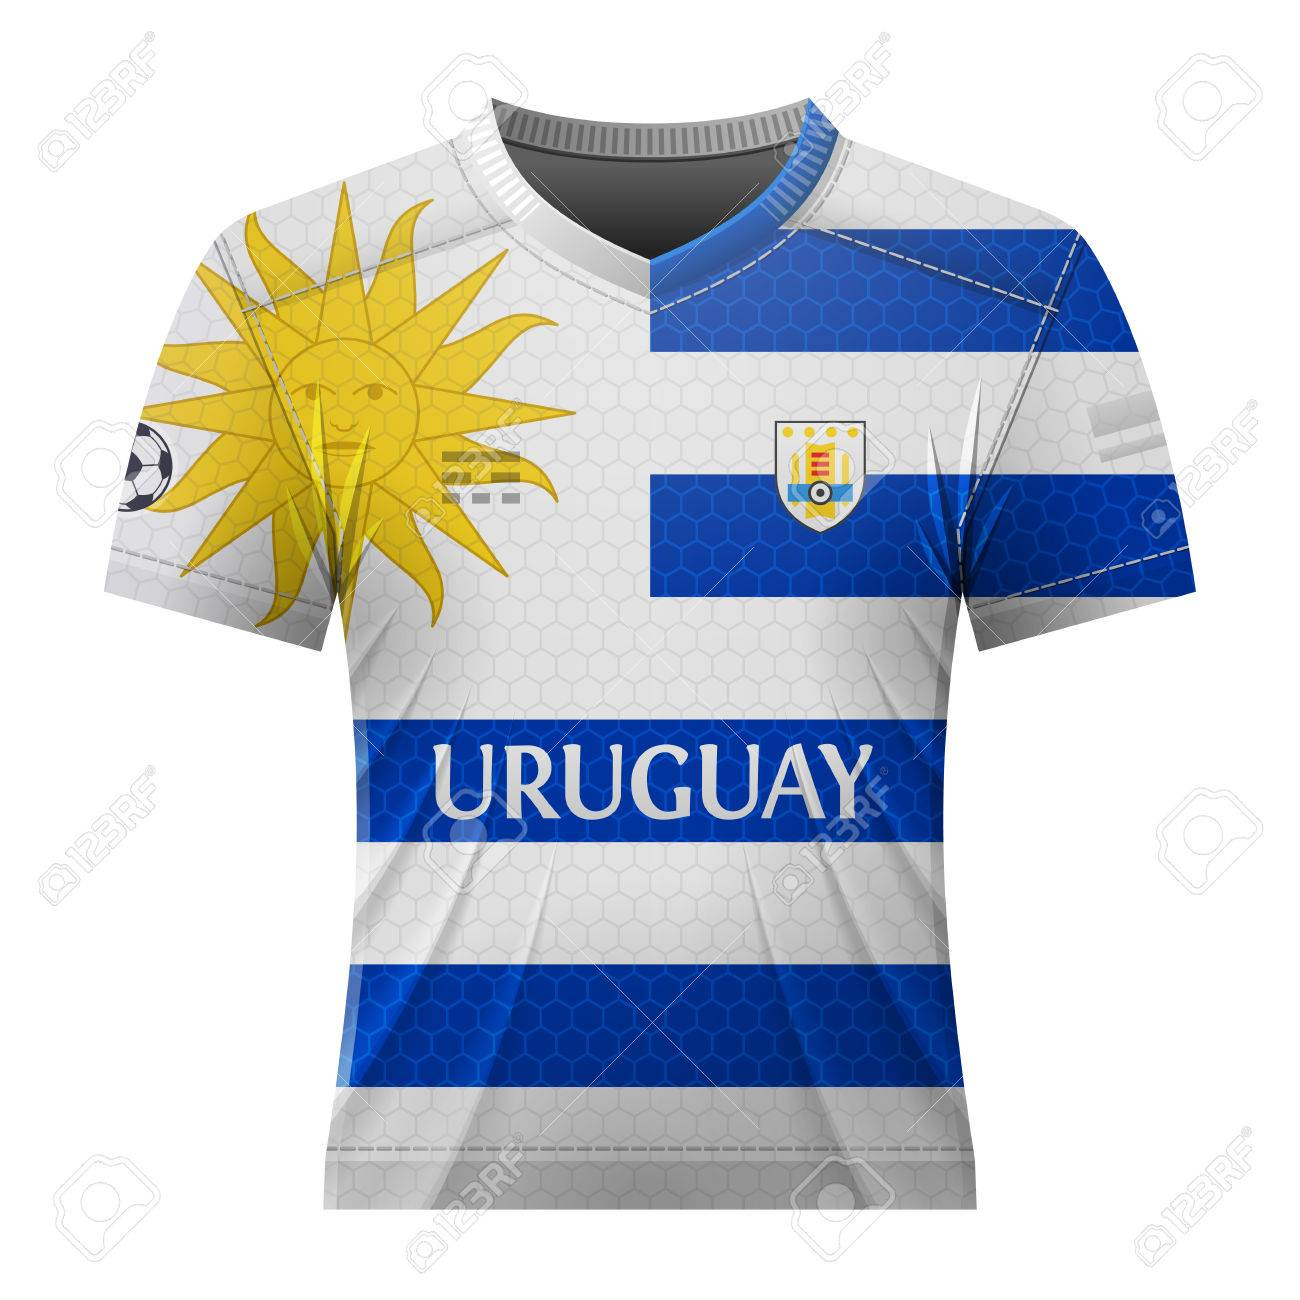 Soccer shirt in colors of uruguayan flag. National jersey for football team  of Uruguay. 9a605c2a7